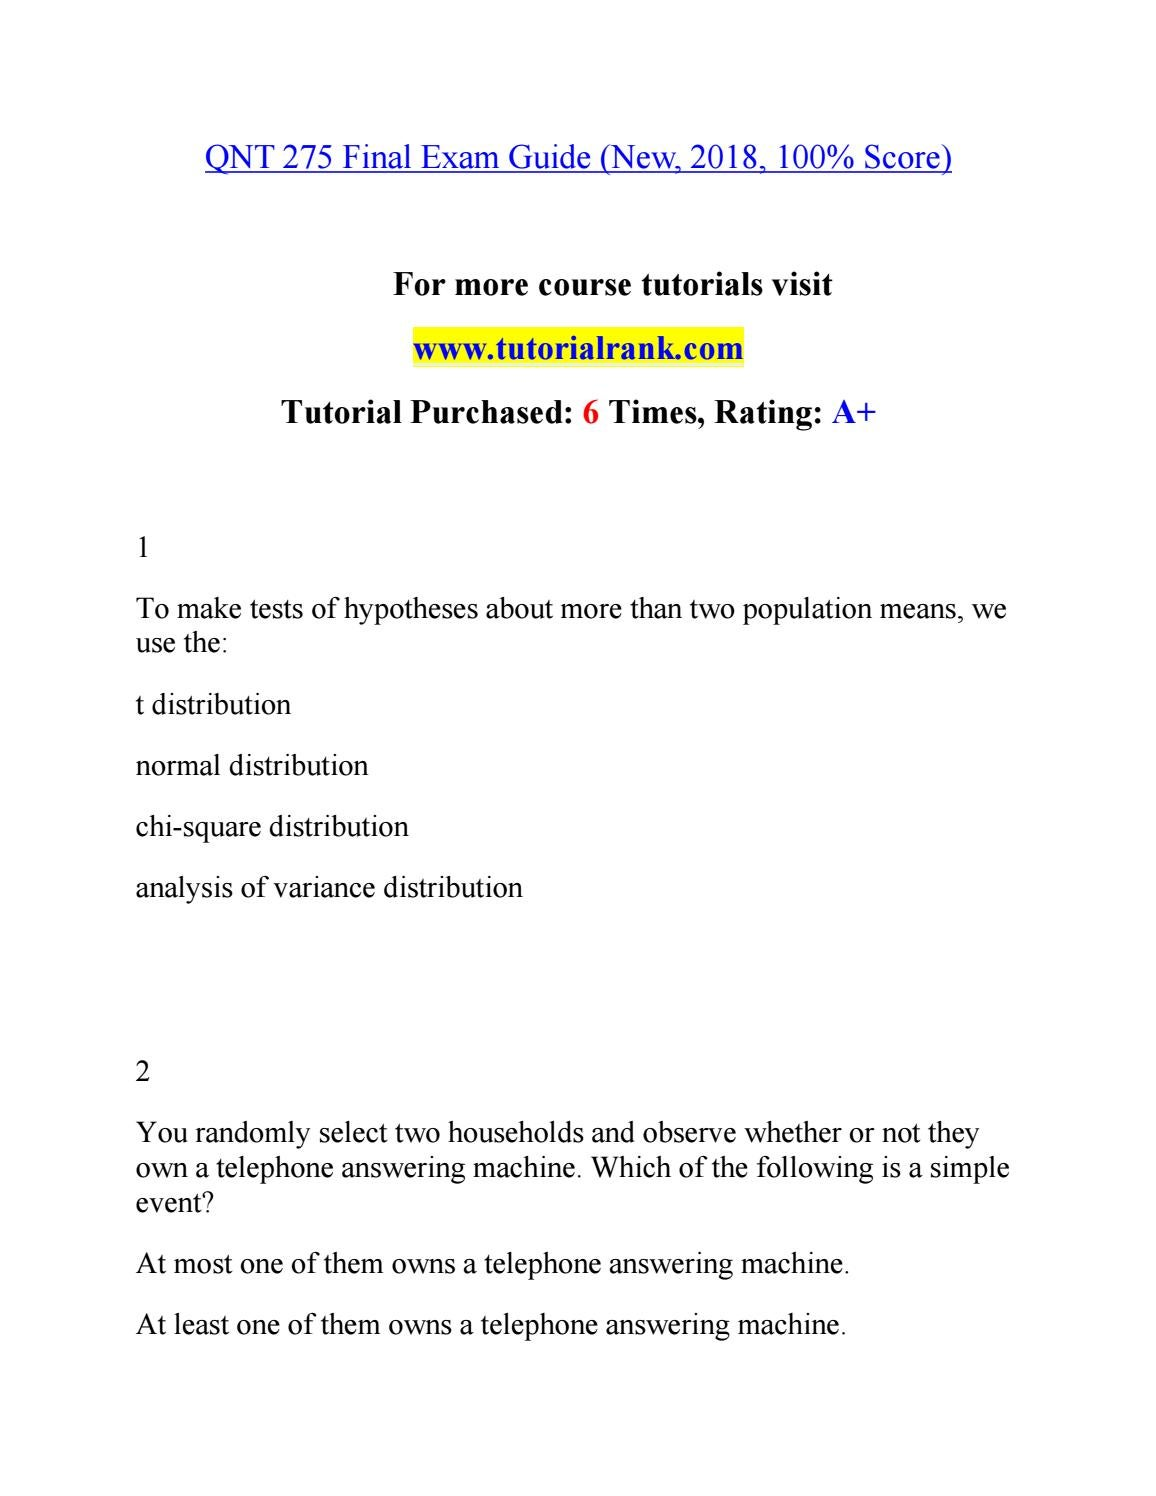 QNT 275 Teaching Effectively--tutorialrank com by